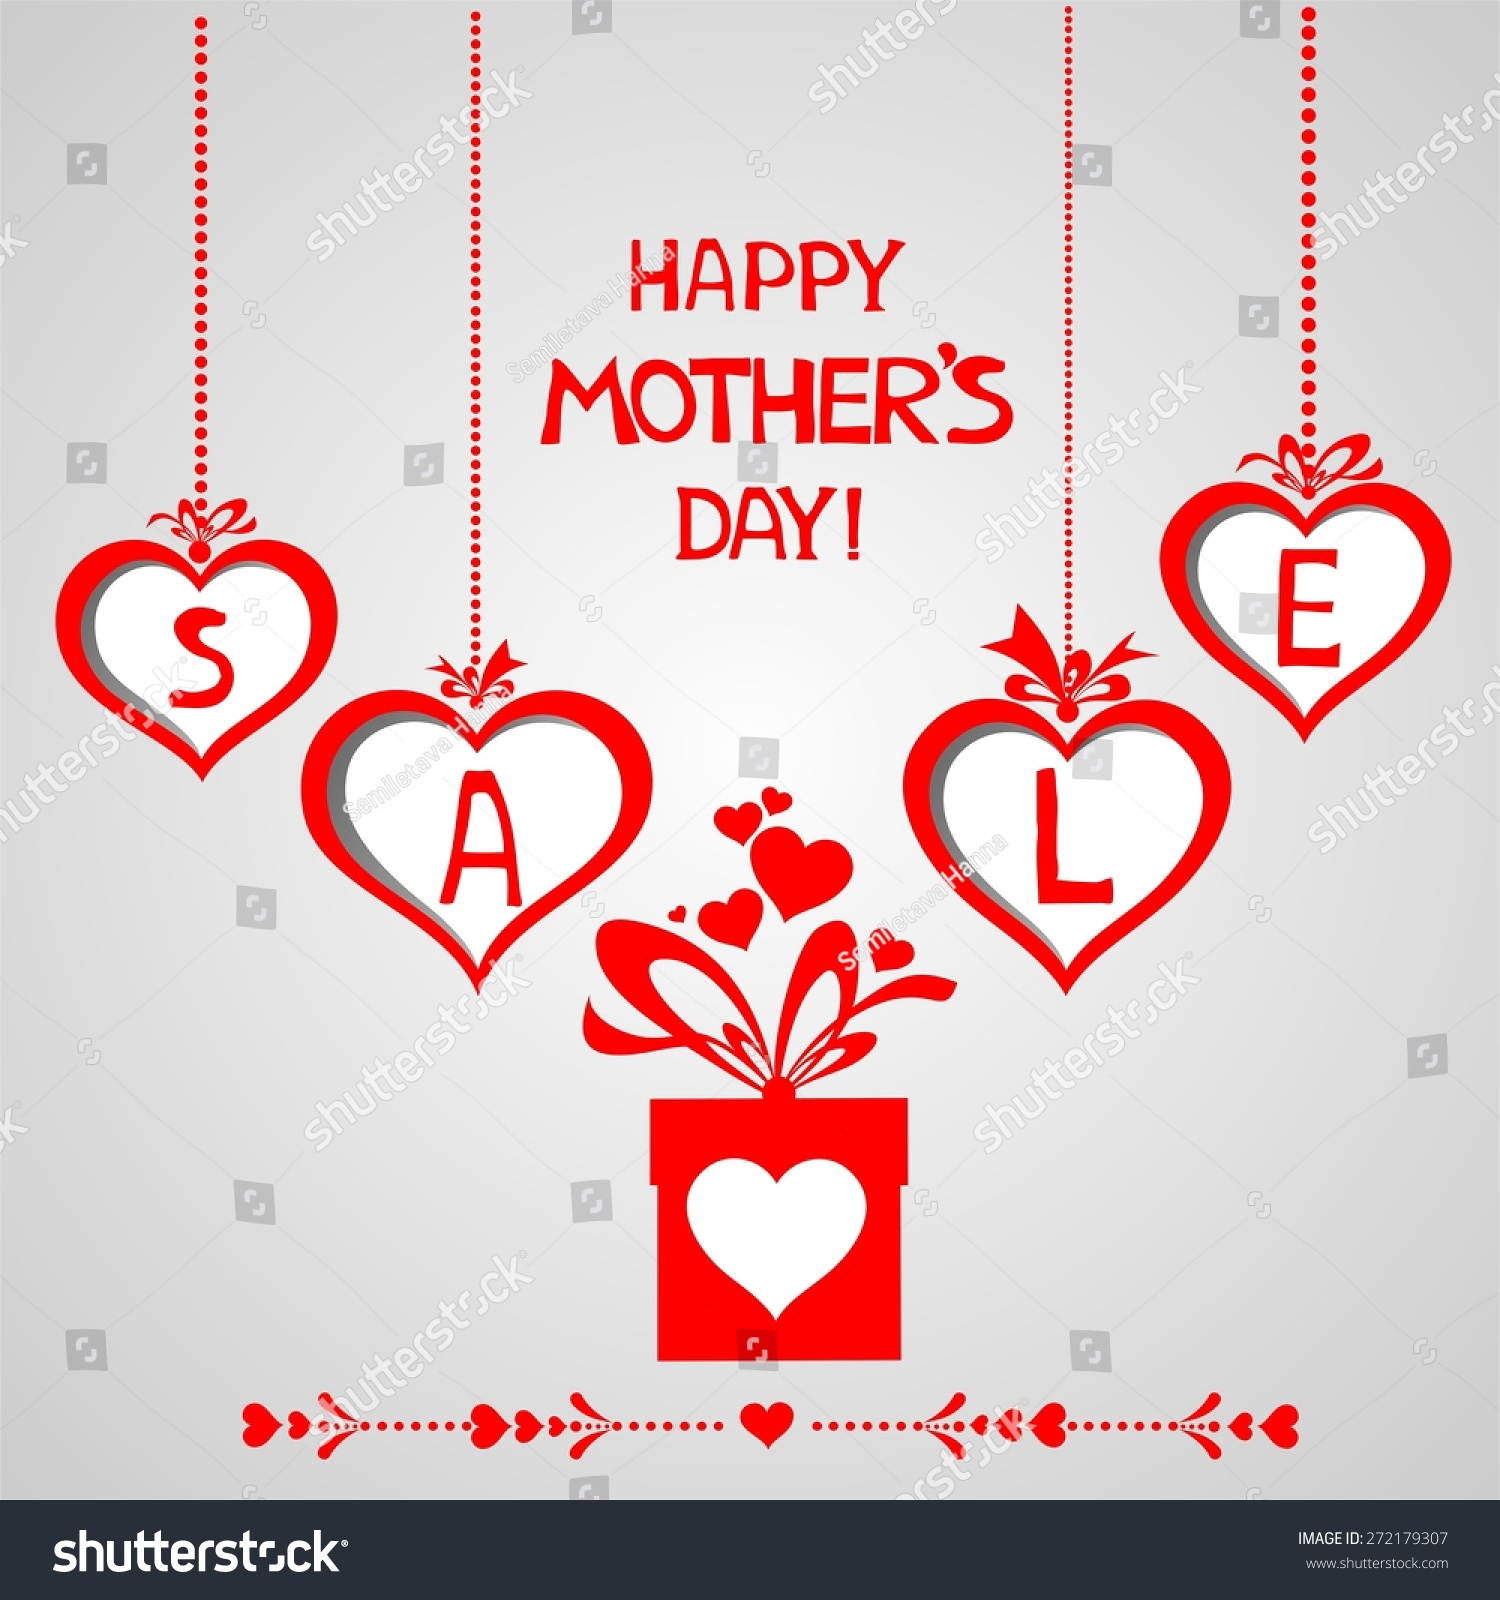 Mothers Day Storewide Sale Template: Happy Mother Day Background Sale Design Stock Illustration